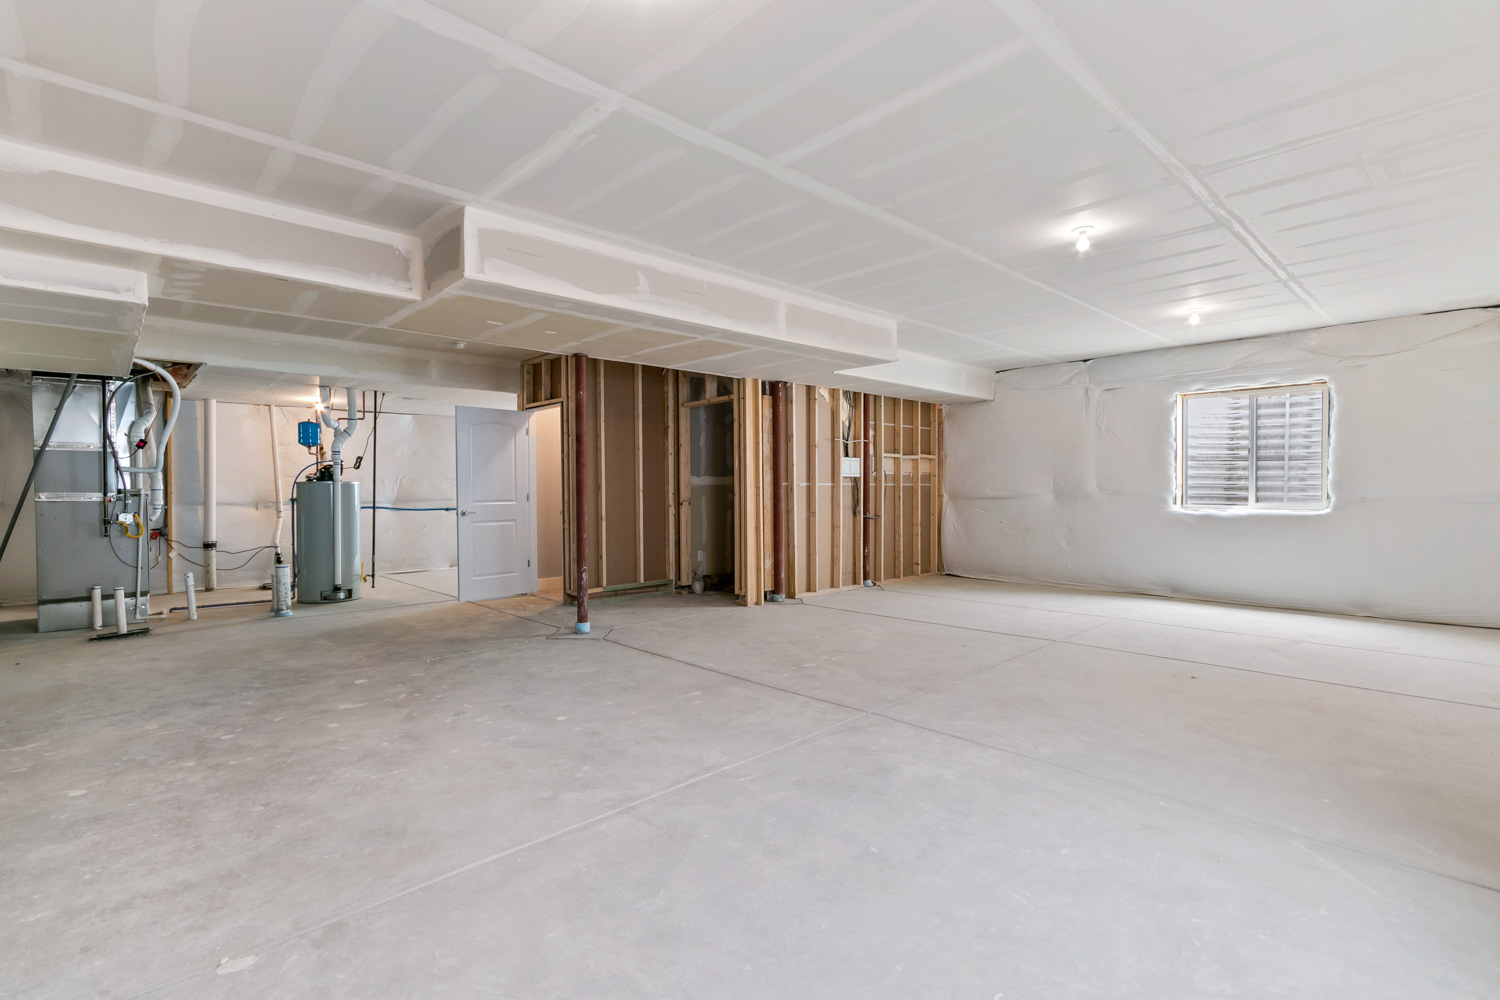 029-Basement-7199-E-163rd-Ave-Large.jpg